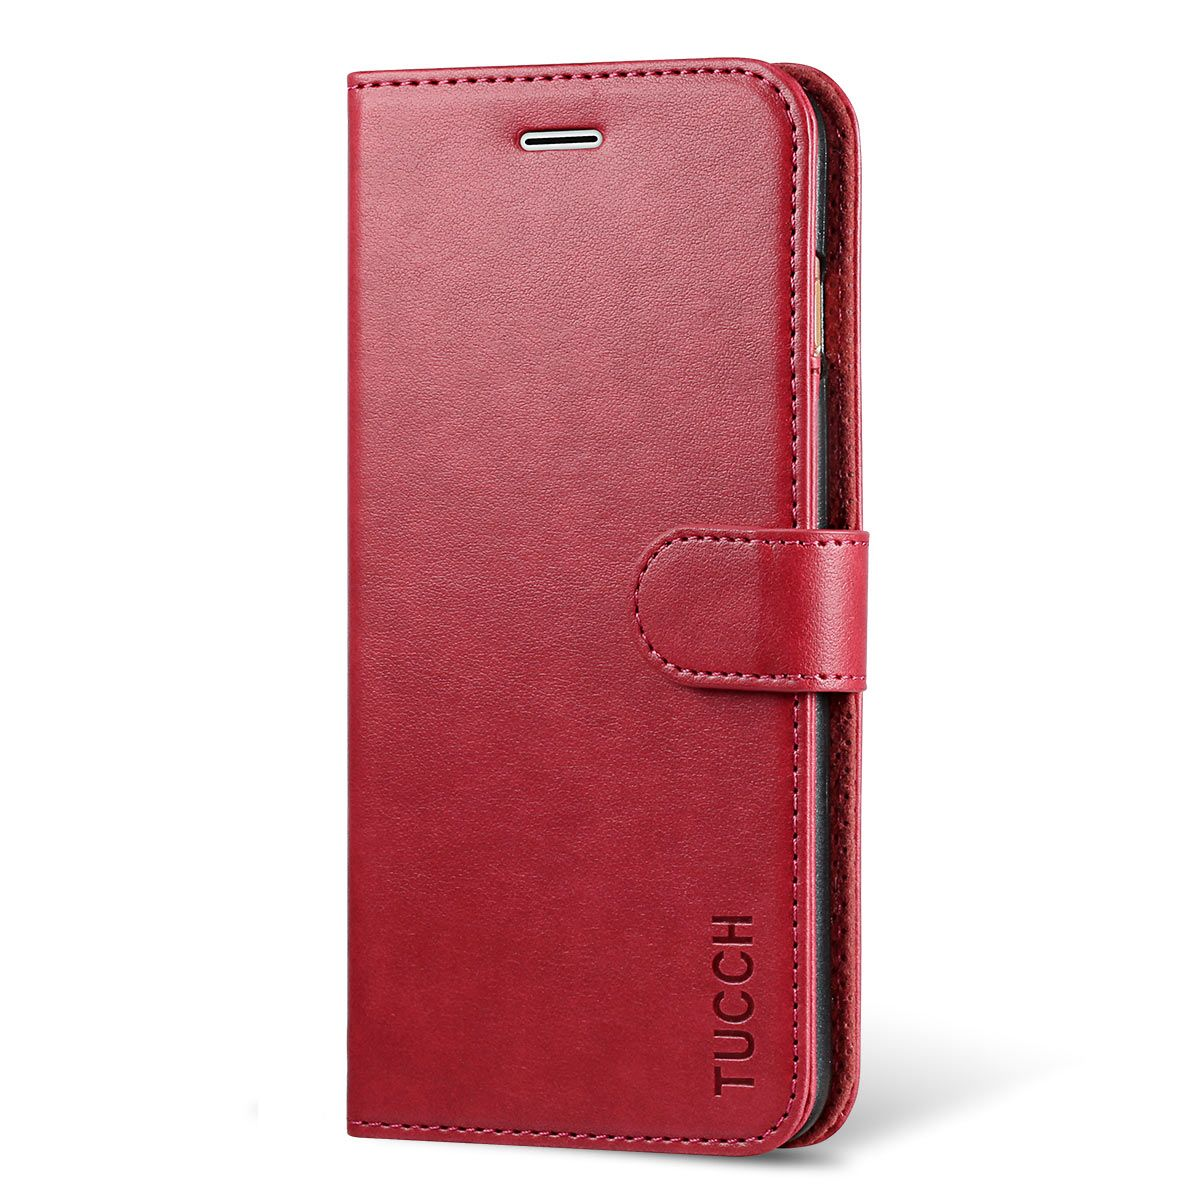 a1dedbe16f TUCCH iPhone 7 Plus Wallet Case, iPhone 8 Plus Case, PU Leather Flip ...